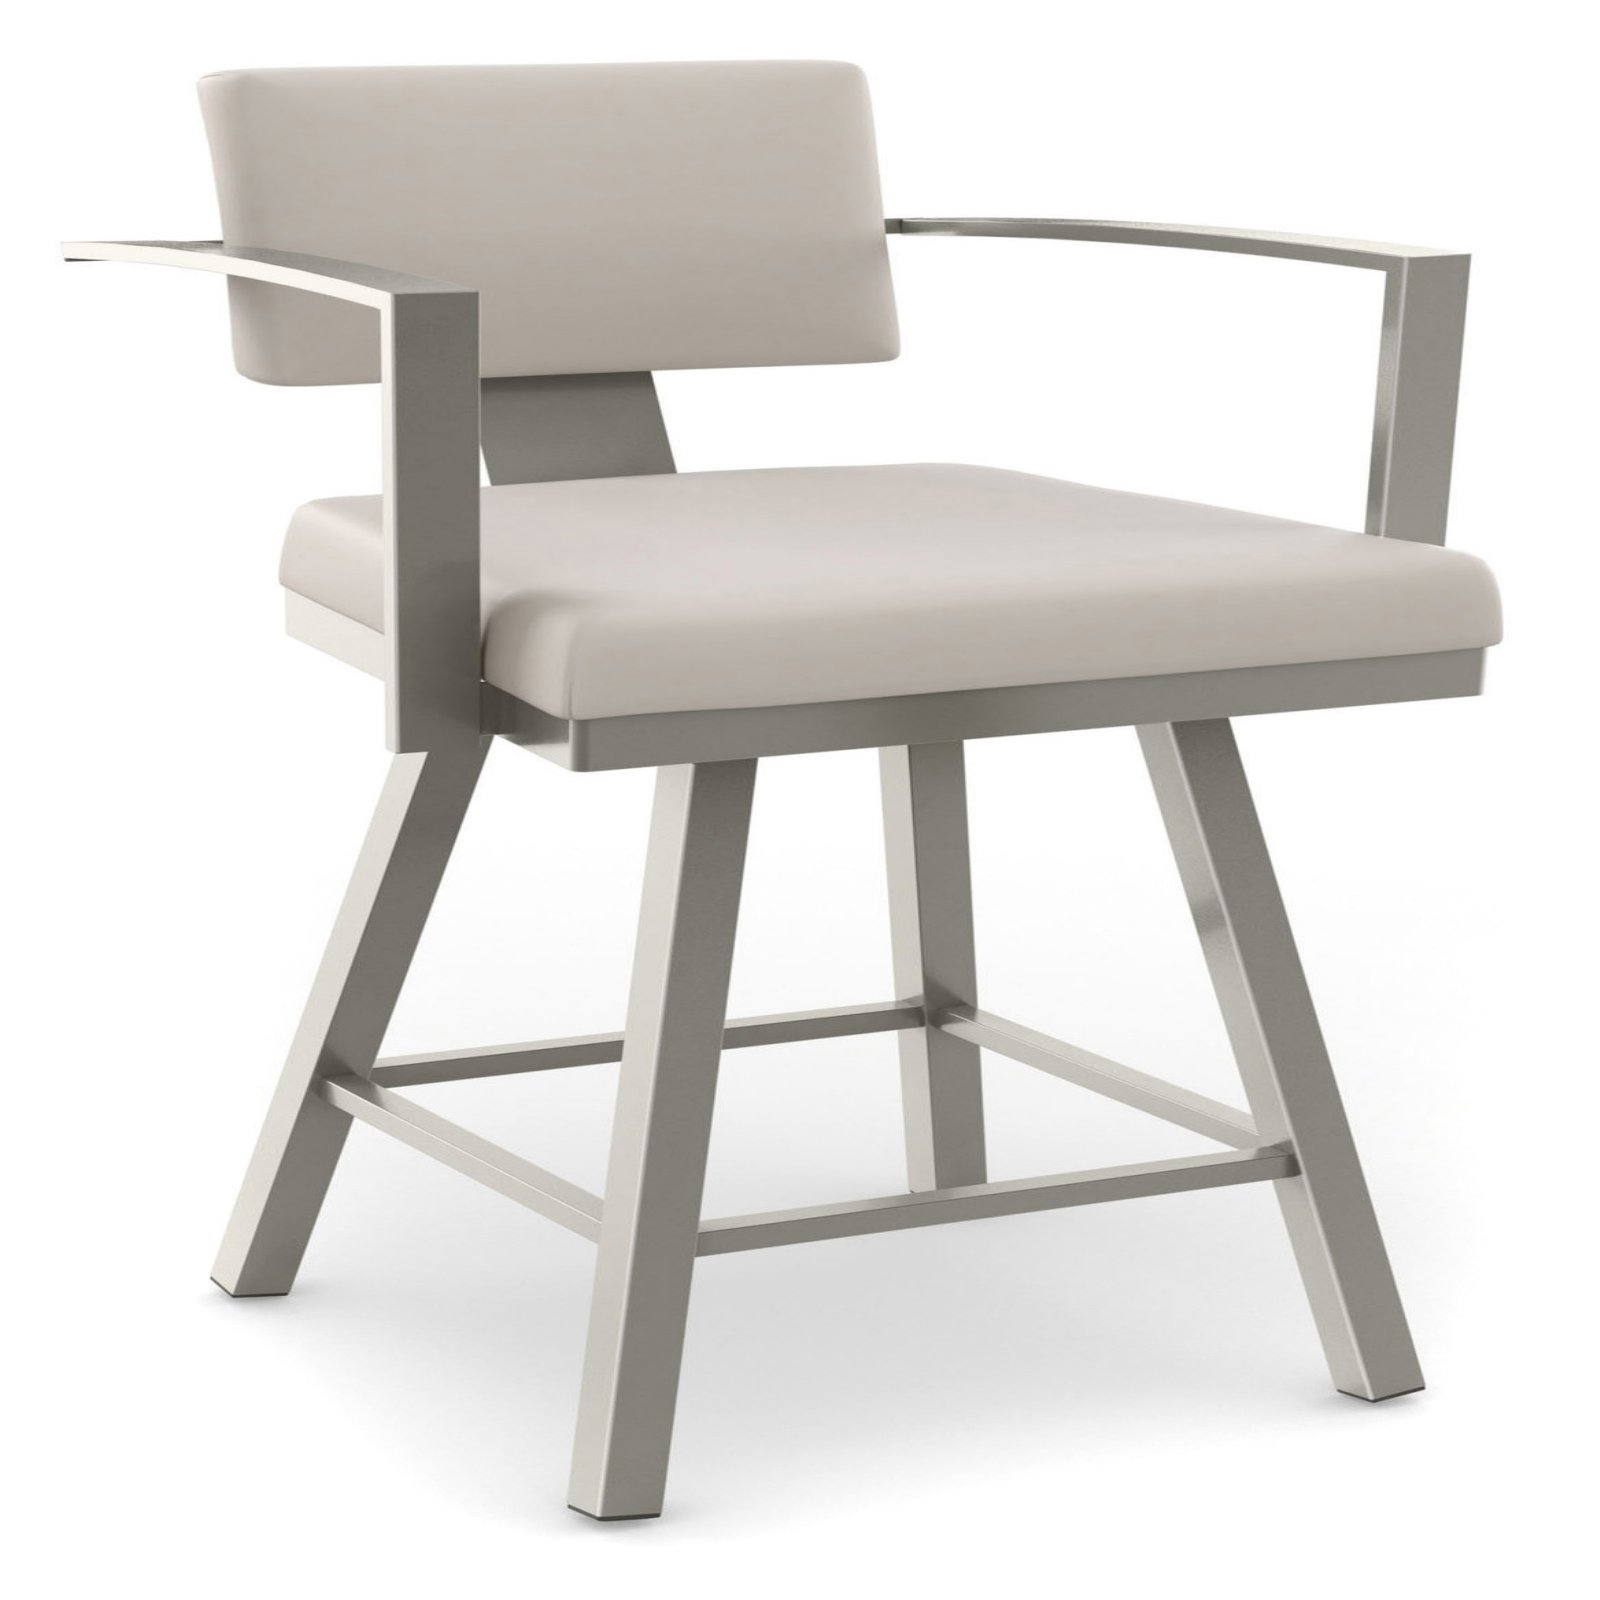 Amisco Akers Swivel Bar Stool With Arms 30 In Walmartcom